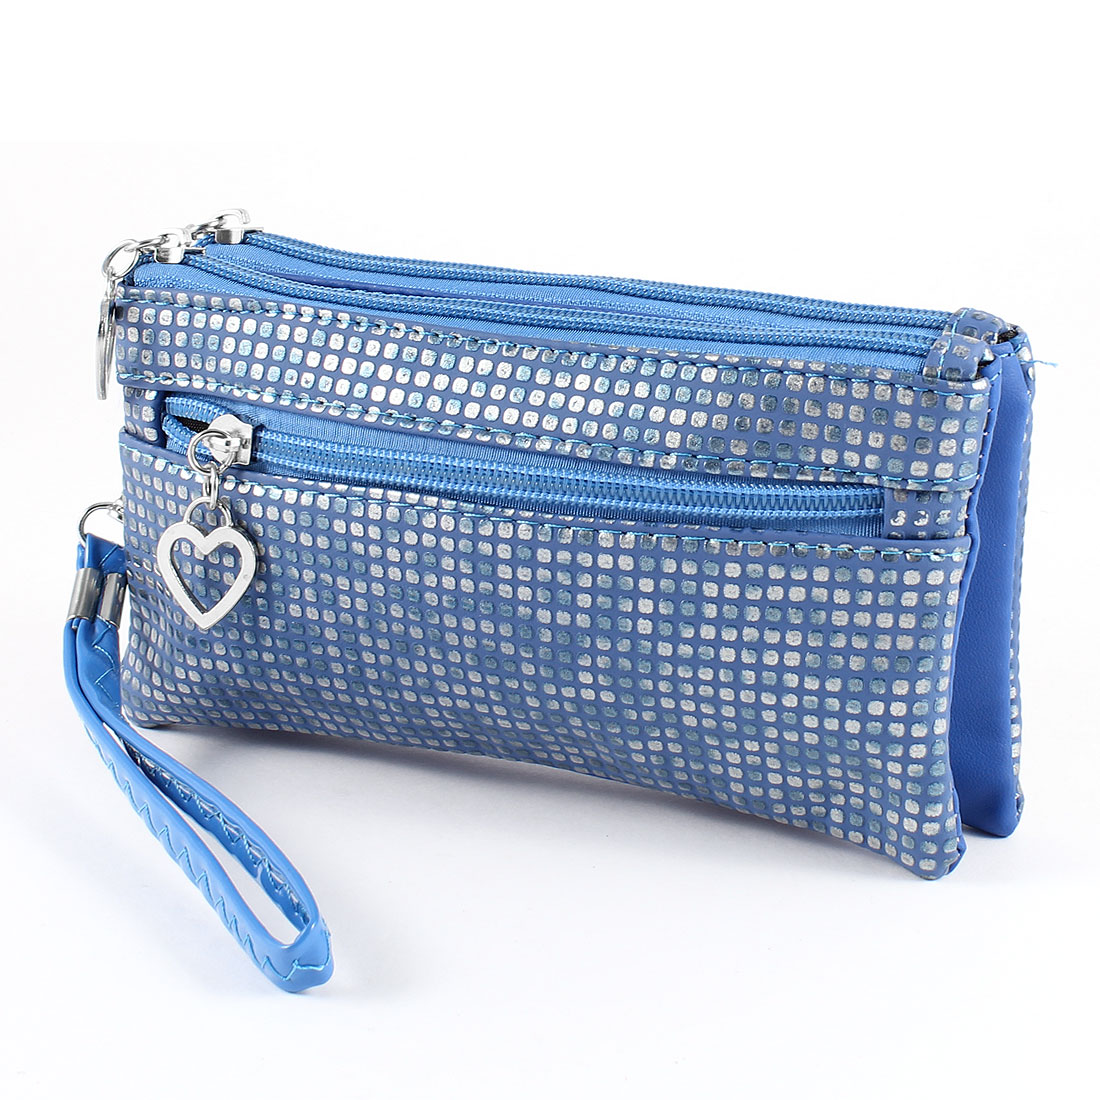 Grid Printed 3 Layers Zip up Faux Leather Wrist Bag Purse Blue for Ladies